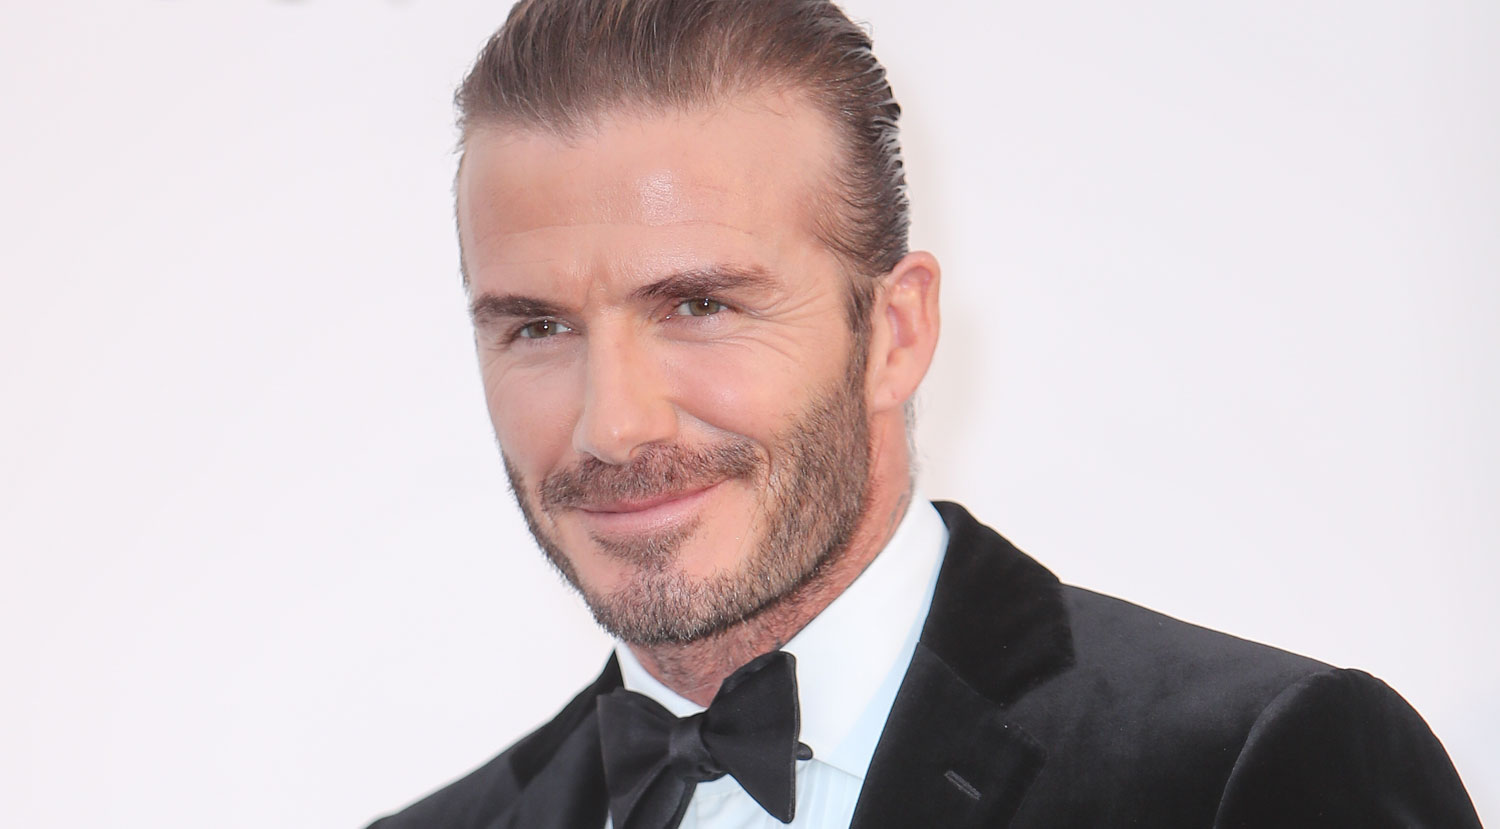 David beckham pulls his hair back for amfar cannes gala - David beckham ...